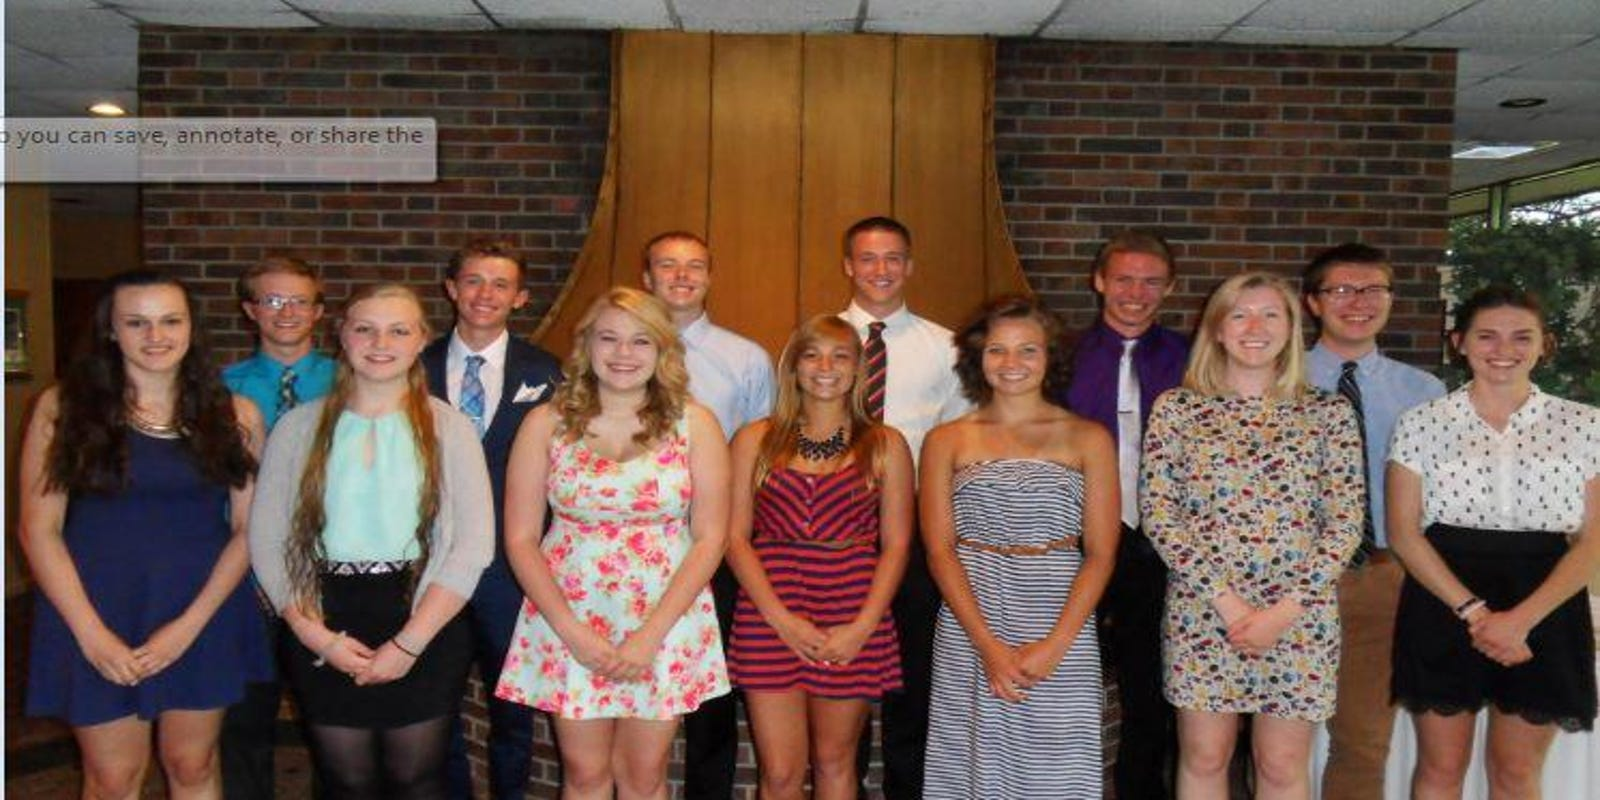 Gold Medal Banquet honors 91 Ross students